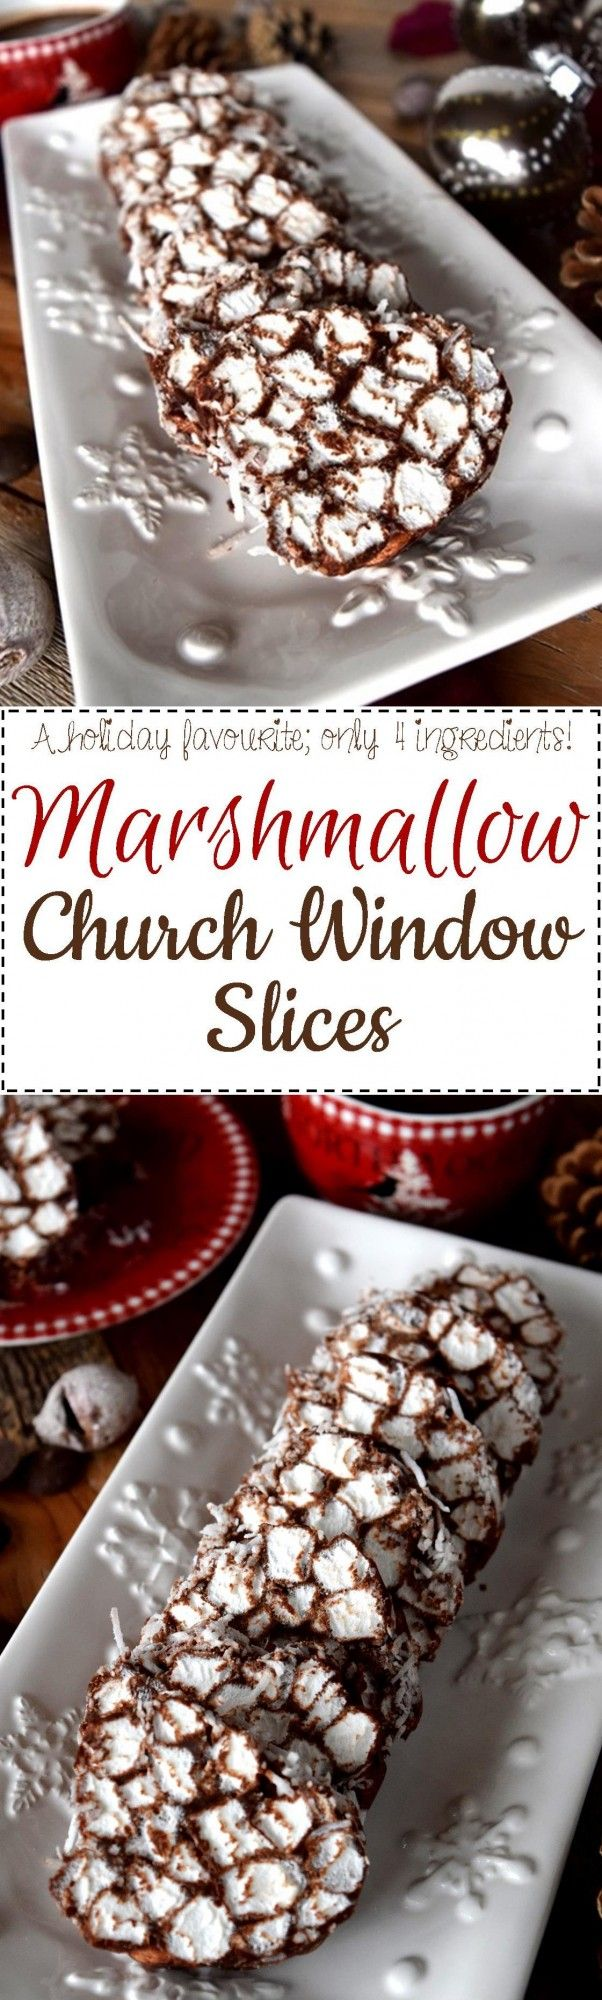 A classic Christmastime treat, Marshmallow Church Window Slices were a childhood favourite.  Only four ingredients bring this sweet treat to life! Sit back and let me tell you about the easiest recipe you can possibly make to serve your guests…